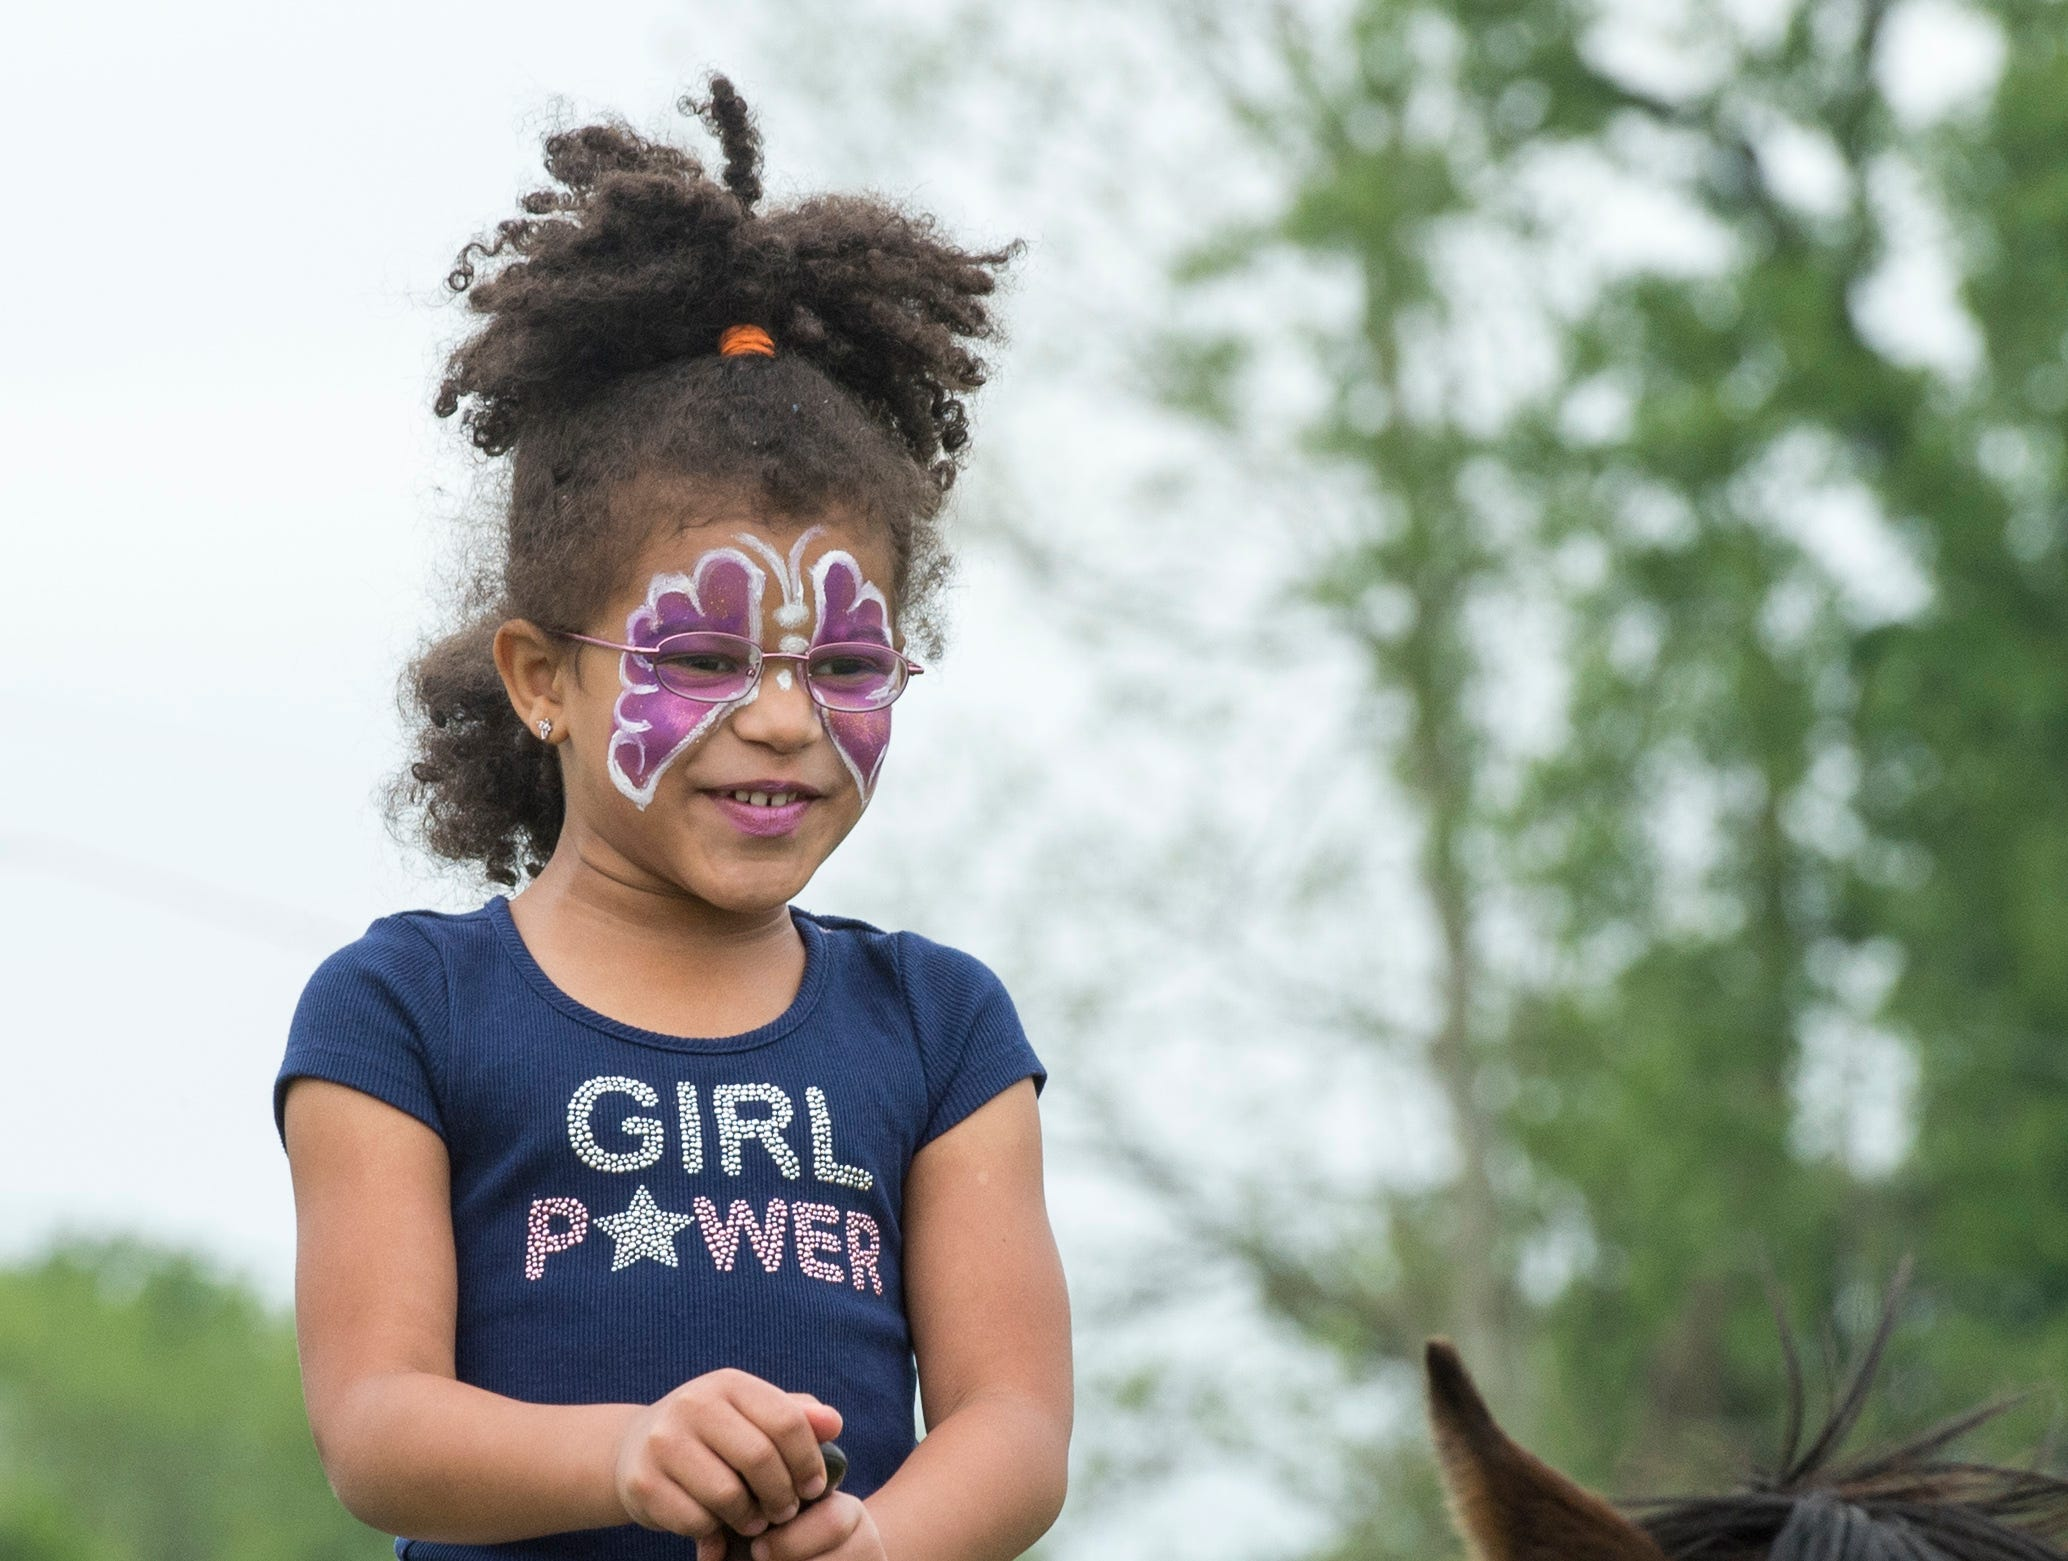 Alanna Gernigan, 6, rides Porter, a rescued offtrack thoroughbred horse from Ellis Park, during the 2019 Spirit Fest Saturday, May 11, 2019. Spirit Fest is a day of fun and activities that benefits the Spirit Medical Fund which raises money for the Evansville Animal Care and Control shelter.